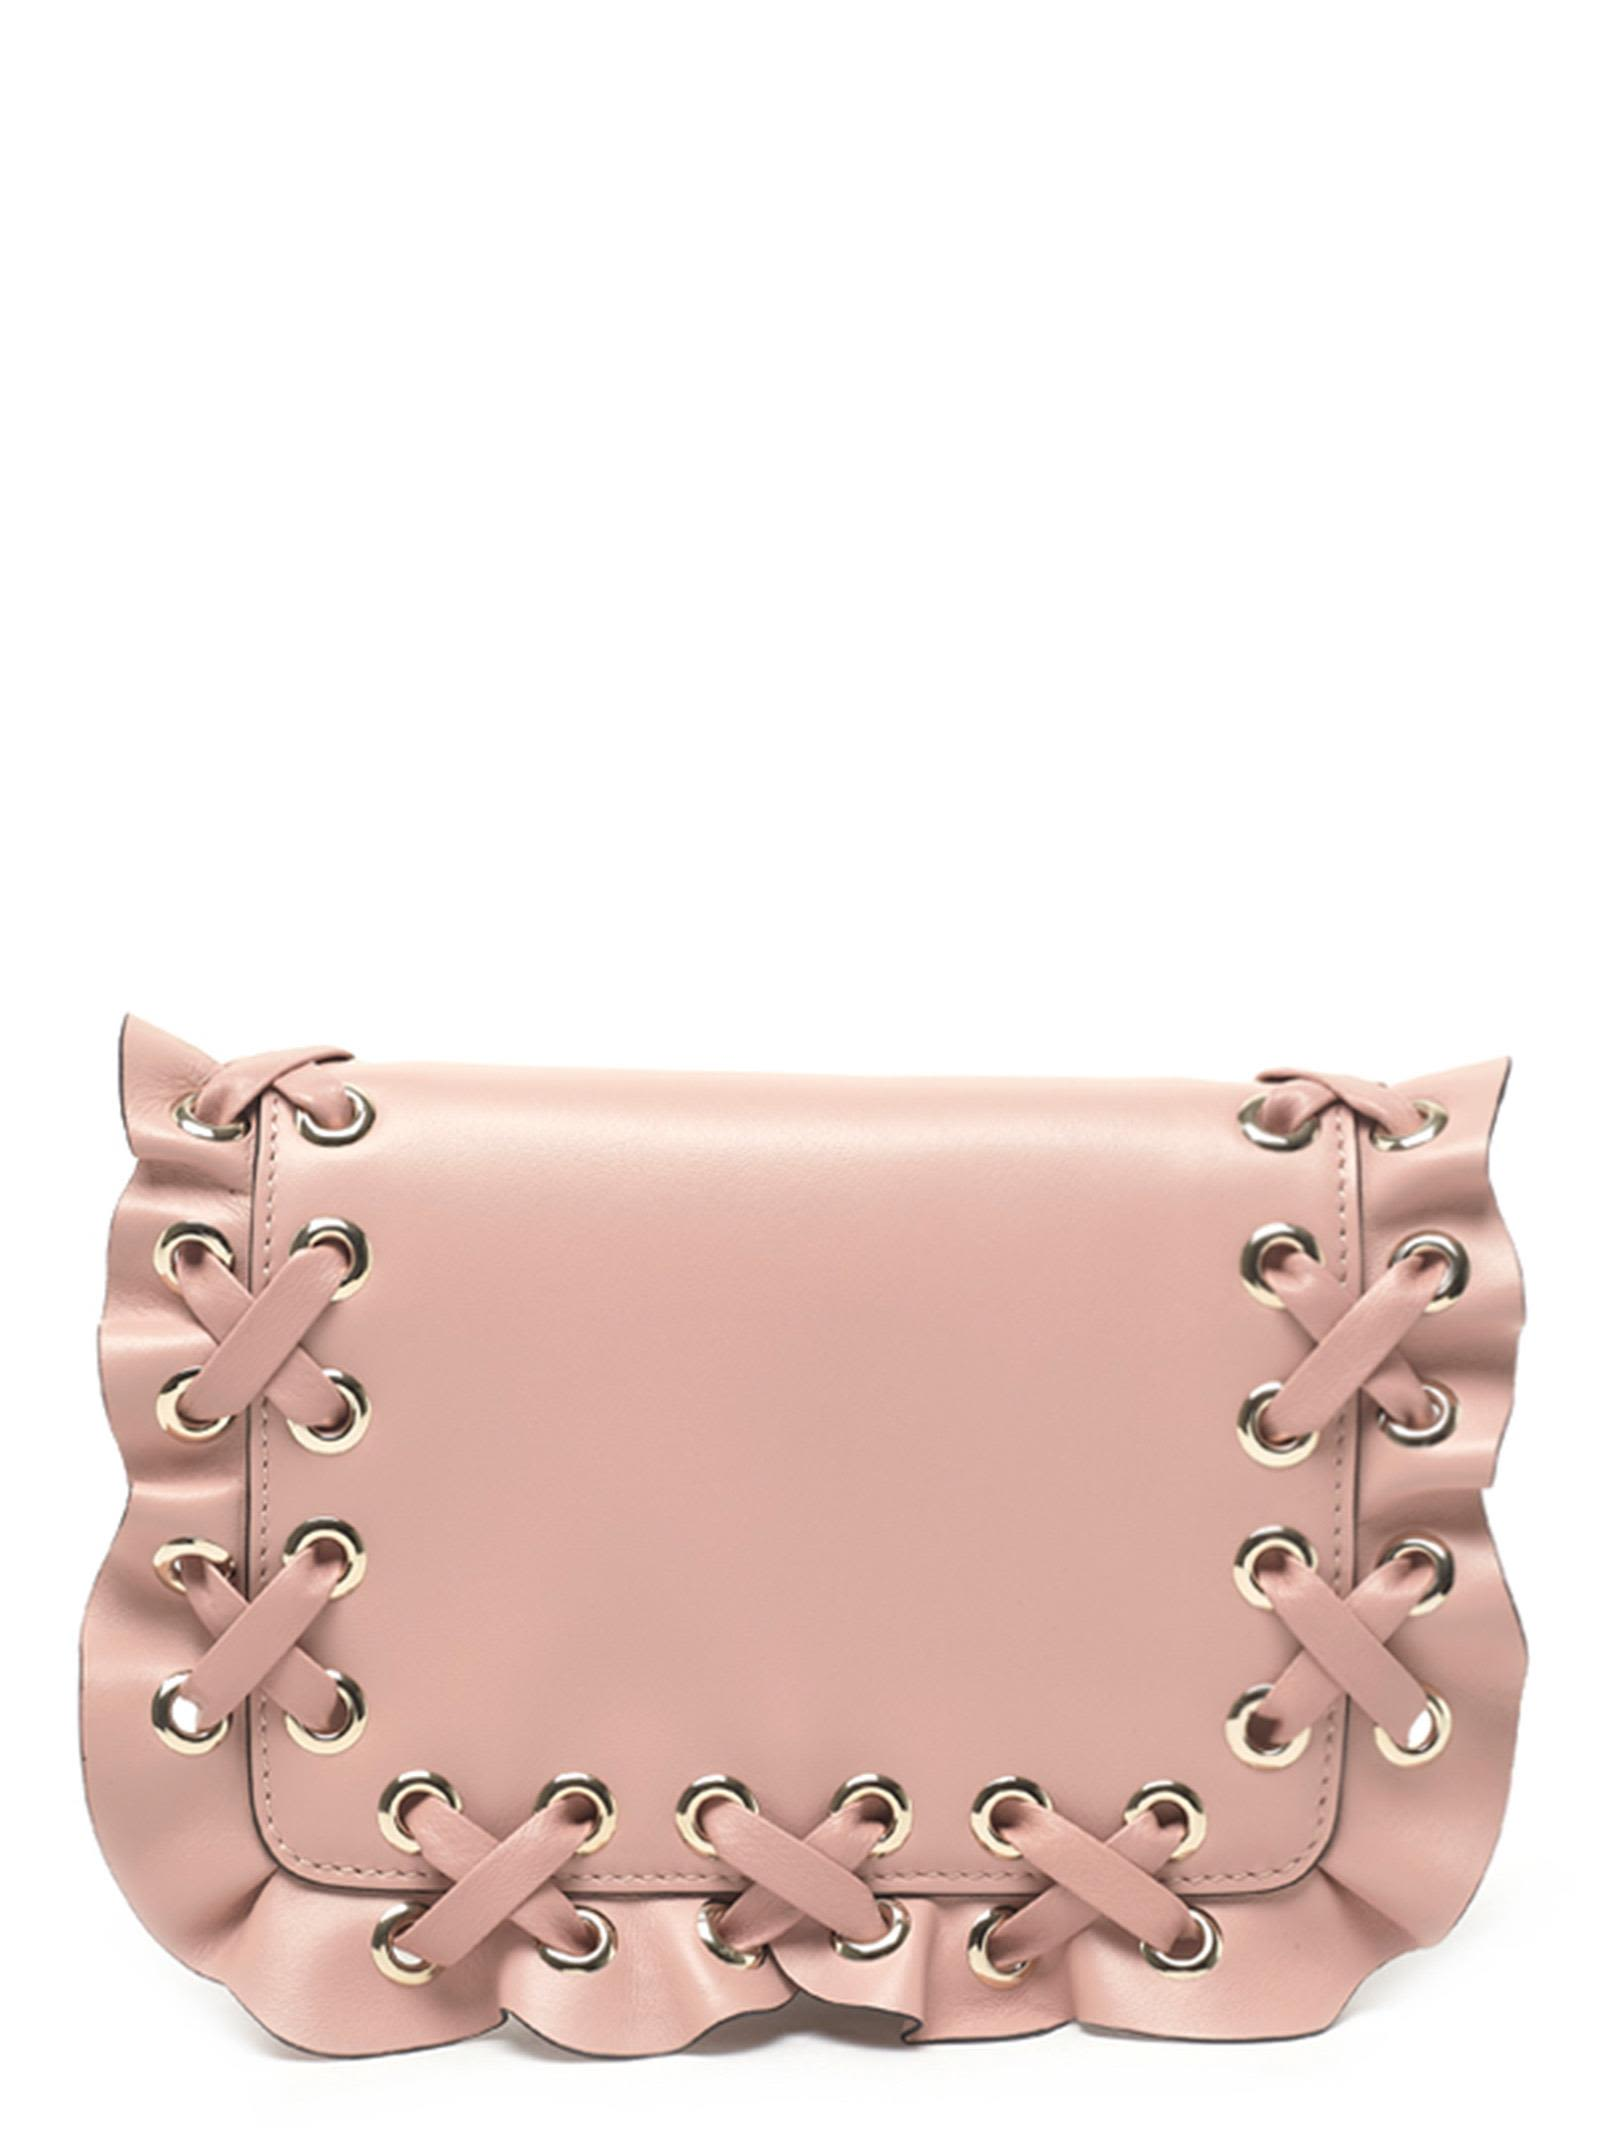 Red Valentino Rock Ruffle Clutch in Pink